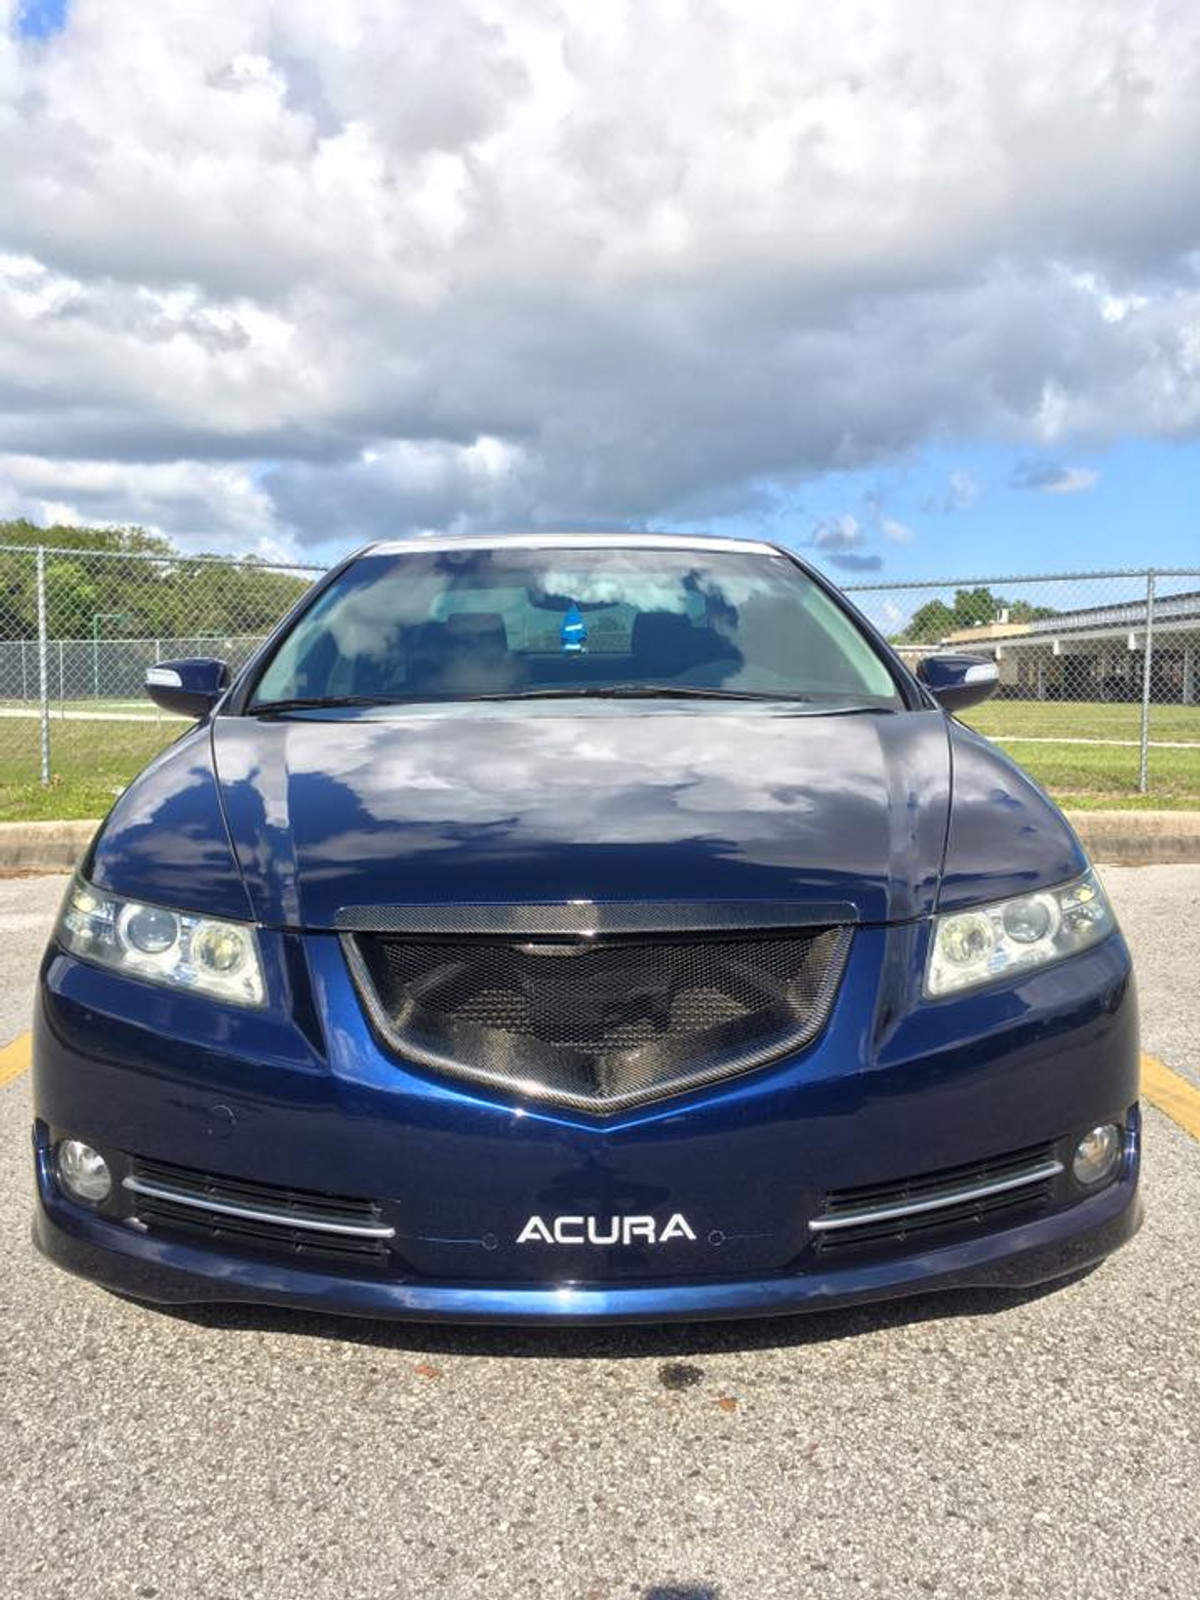 Shark Mouth Style Acura Tl Front Grill - 2006 acura rl grill